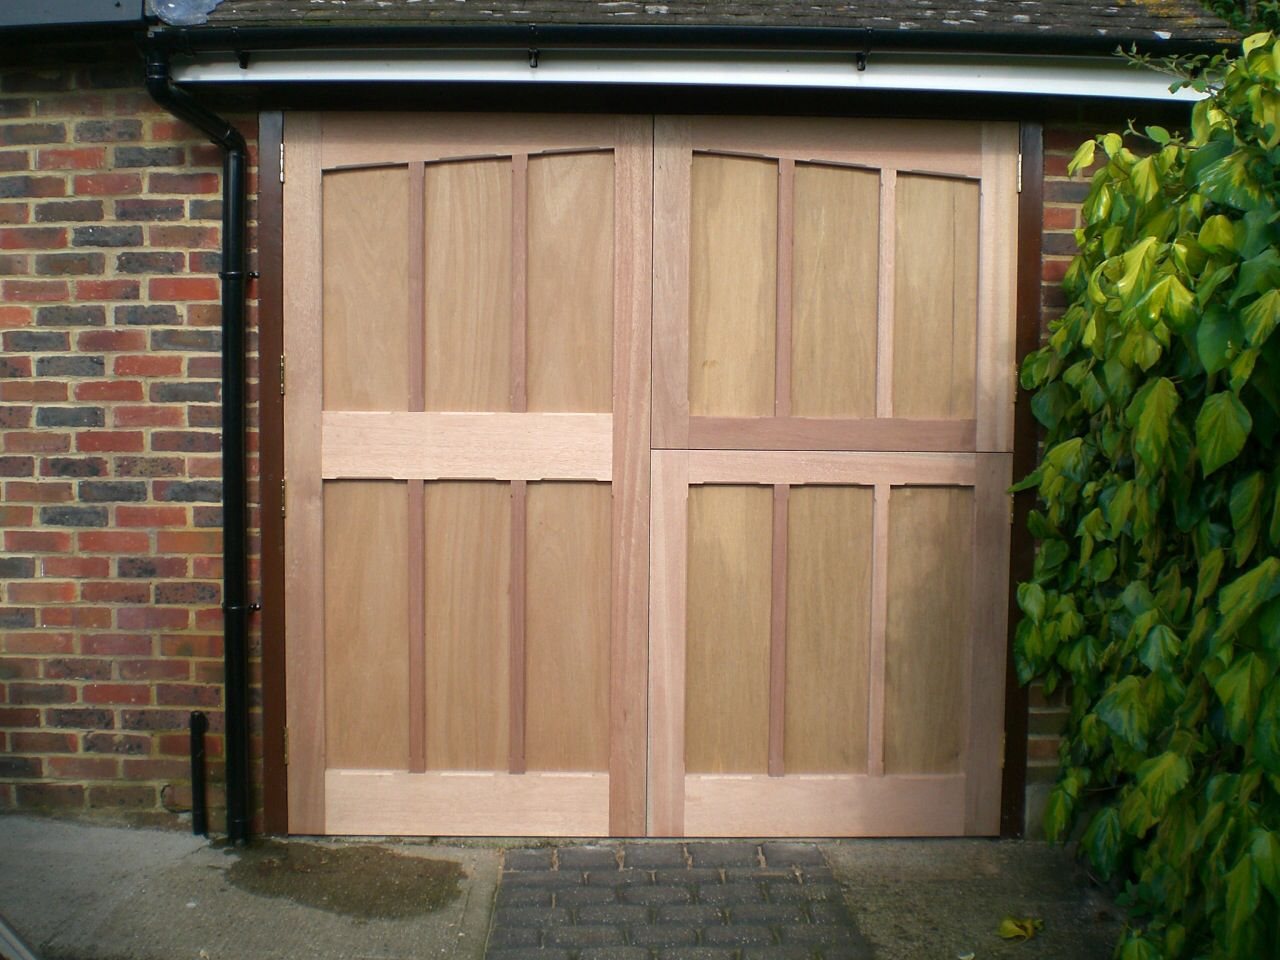 Bespoke garage doors with one side as stable door - by BMC Carpentry and Construction  & Bespoke garage doors with one side as stable door - by BMC ... pezcame.com